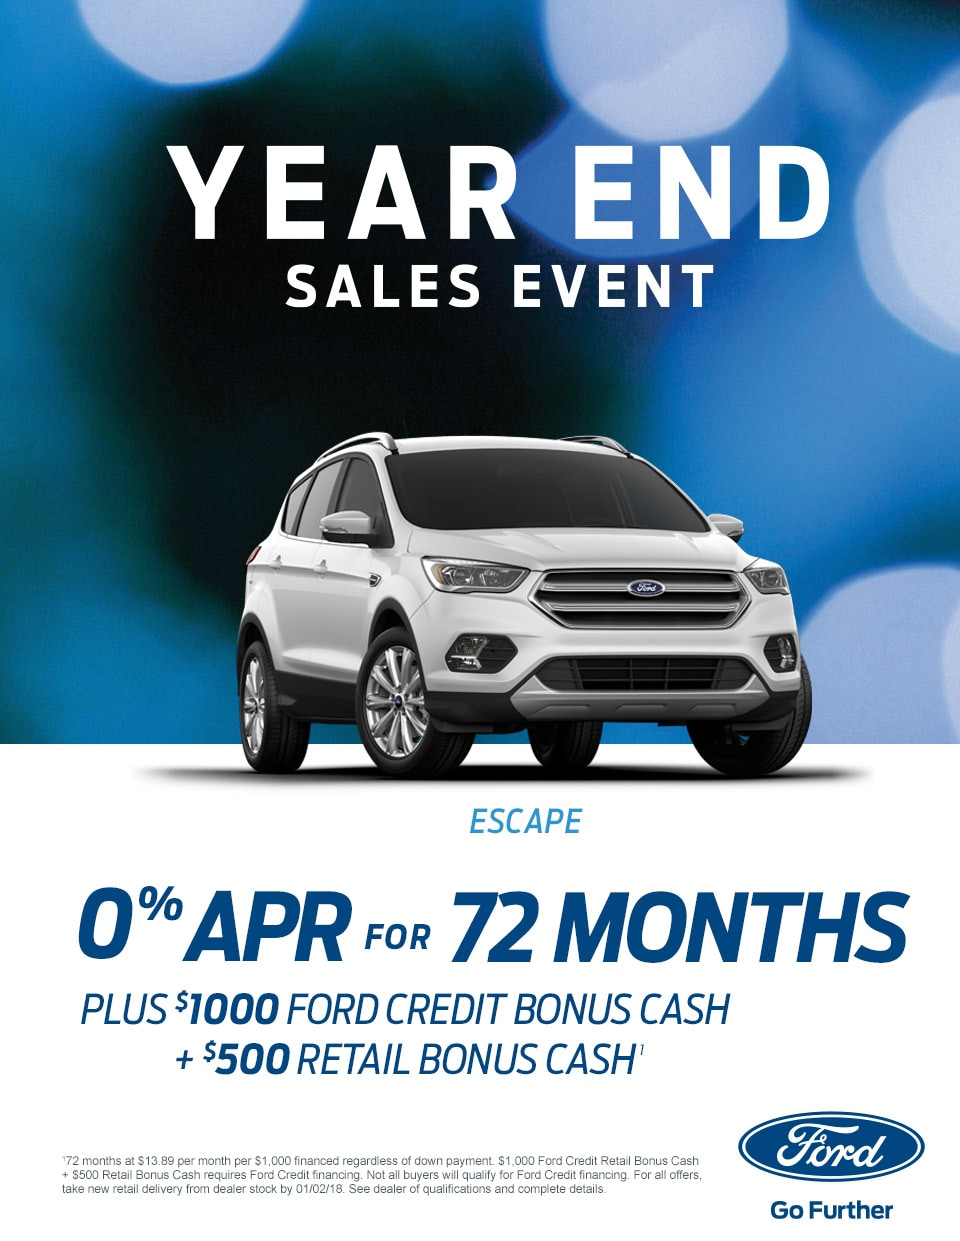 Ford Year End Sale Event Yearend Deals On Vehicles